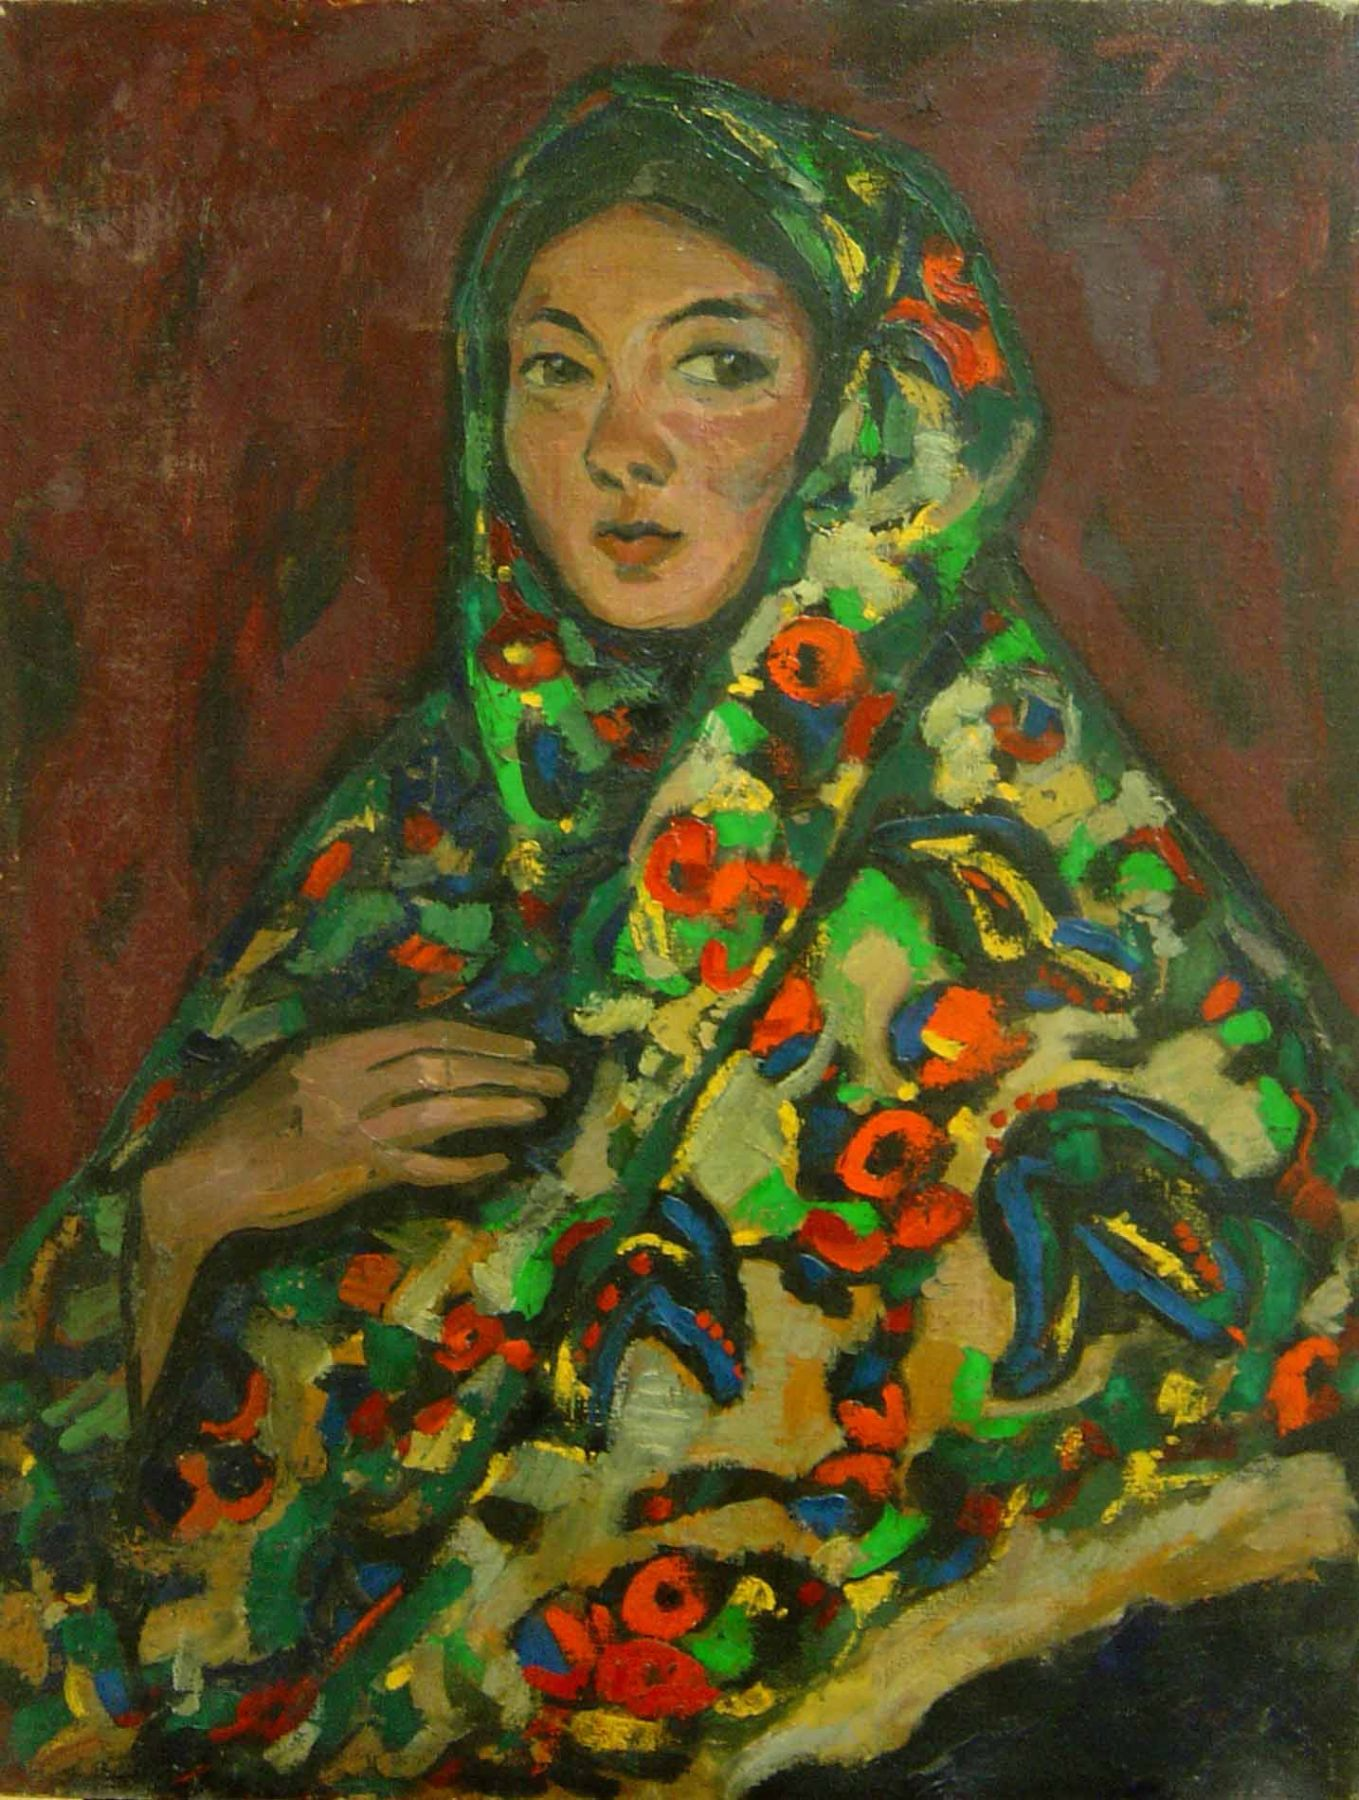 A woman in a kerchief with bright flower pattern.